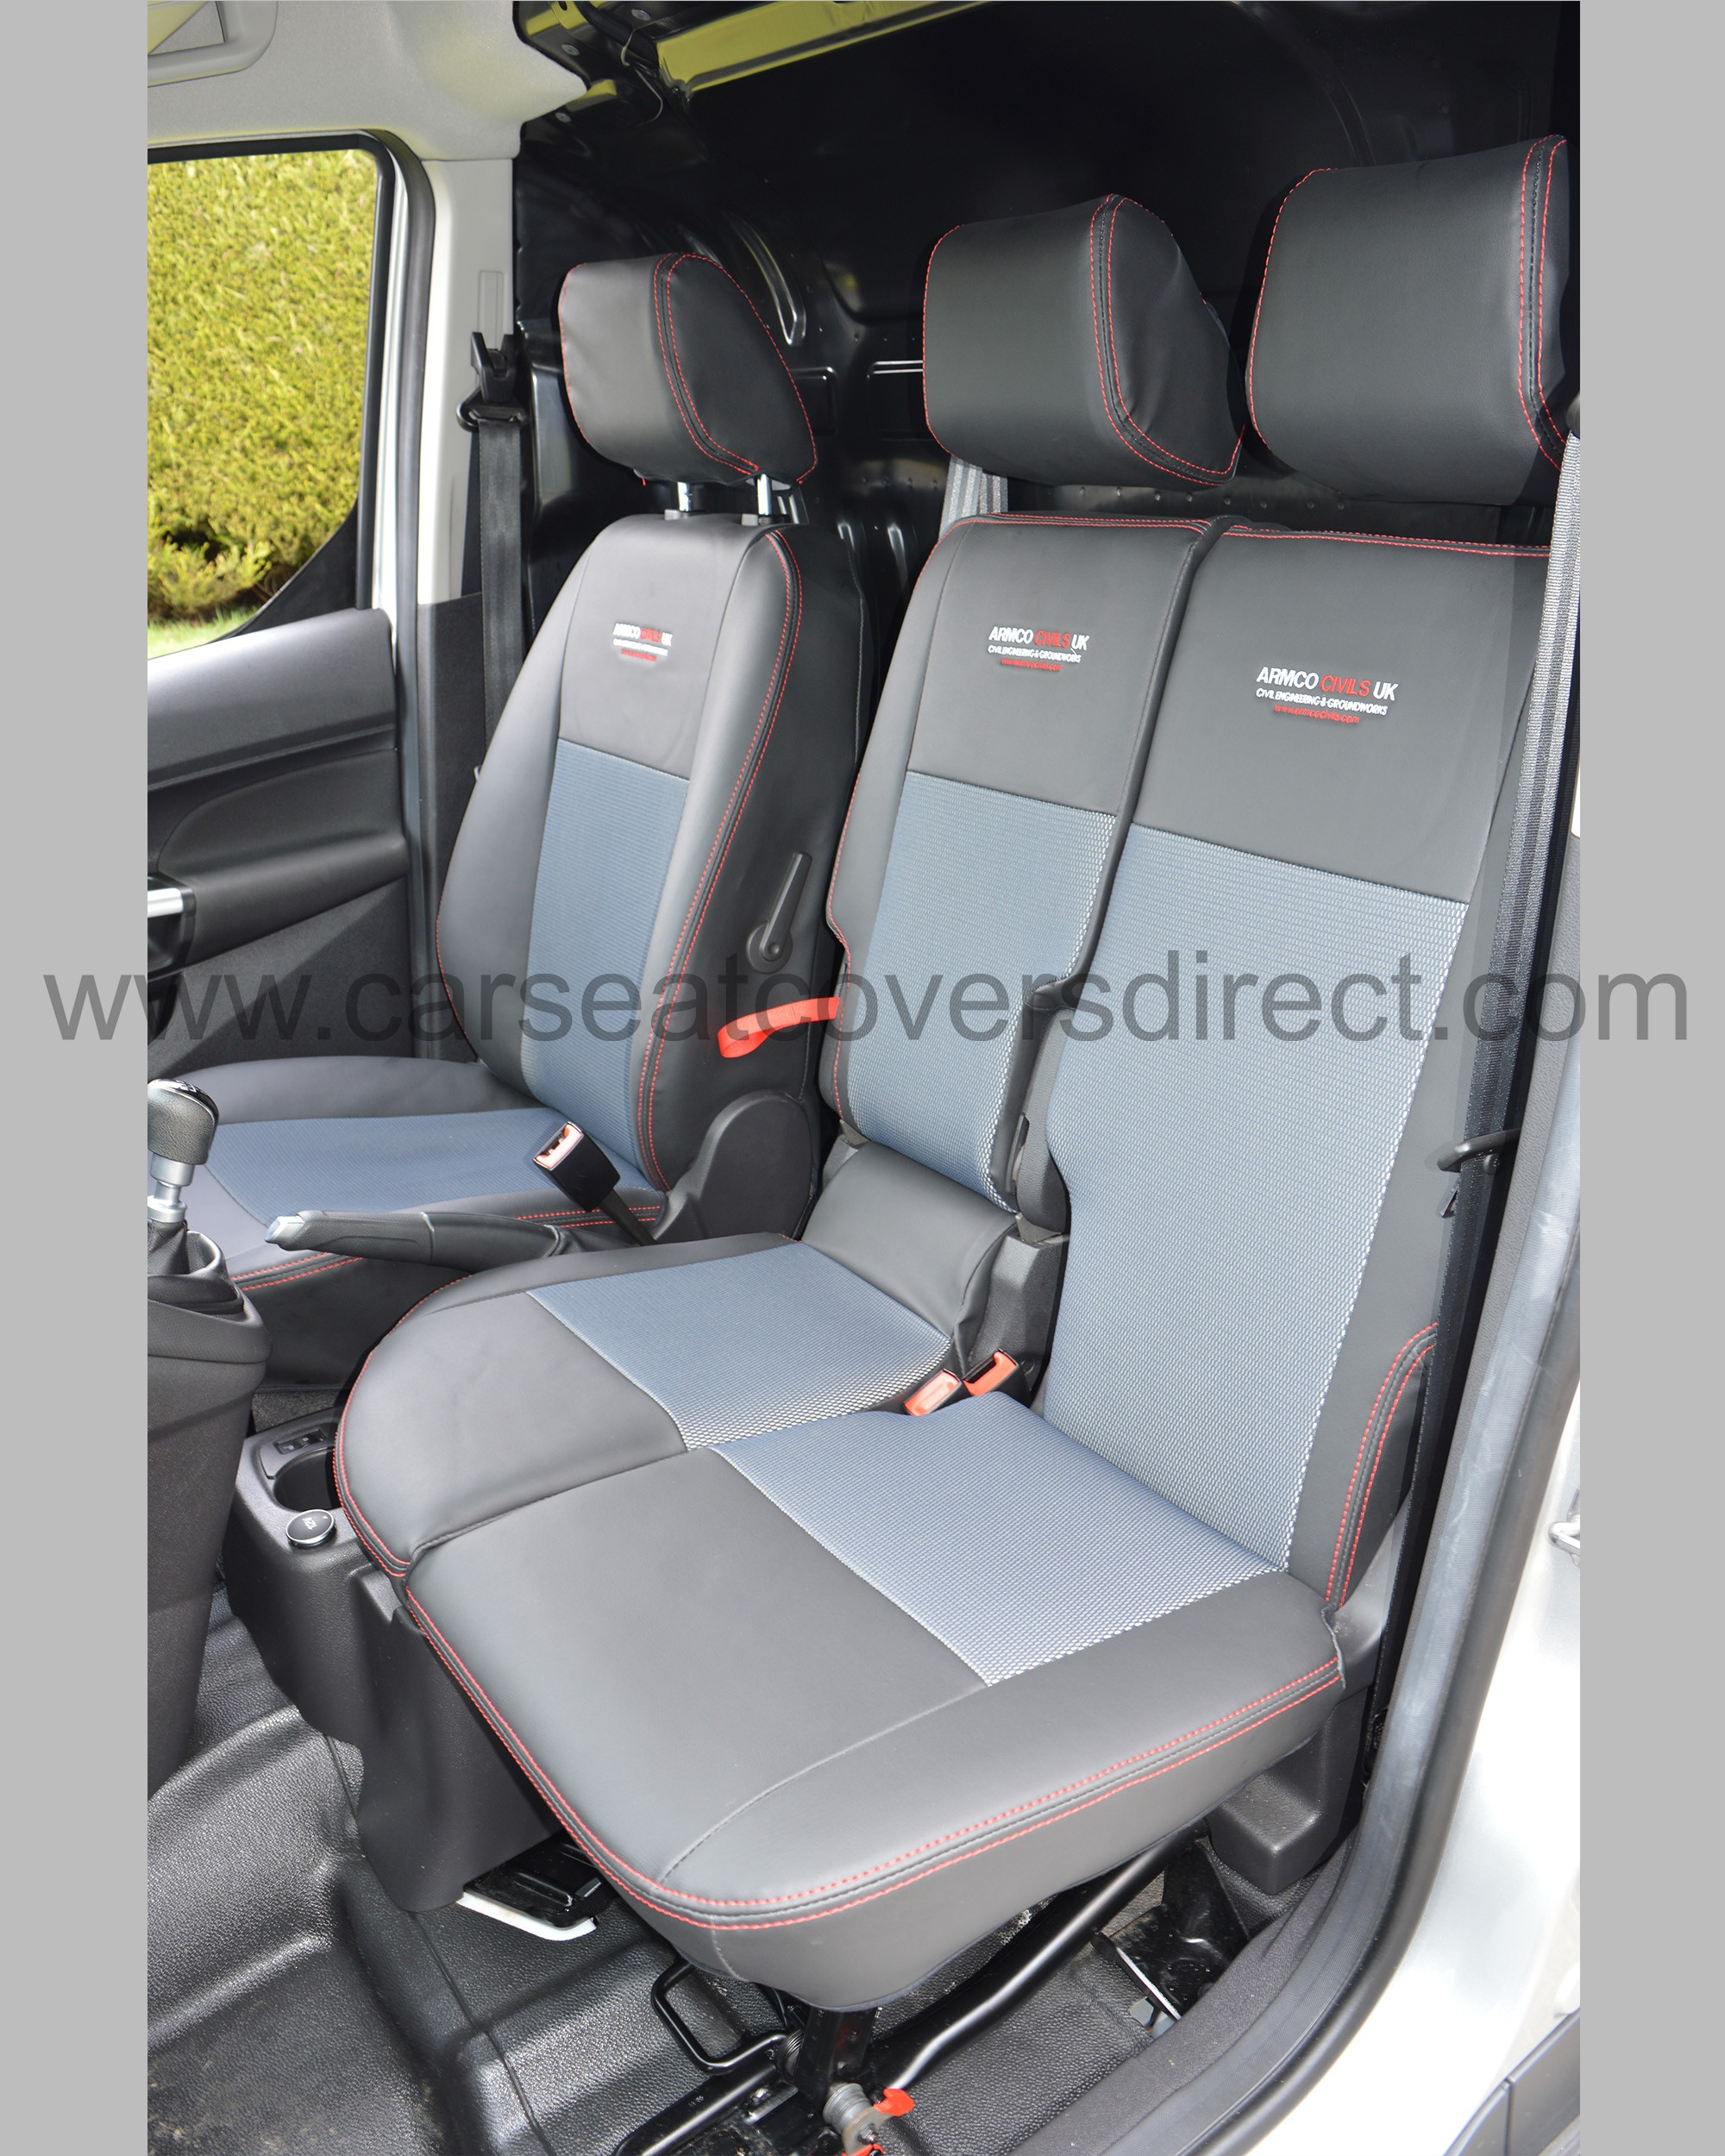 Transit Connect Seat Covers 2017 Velcromag